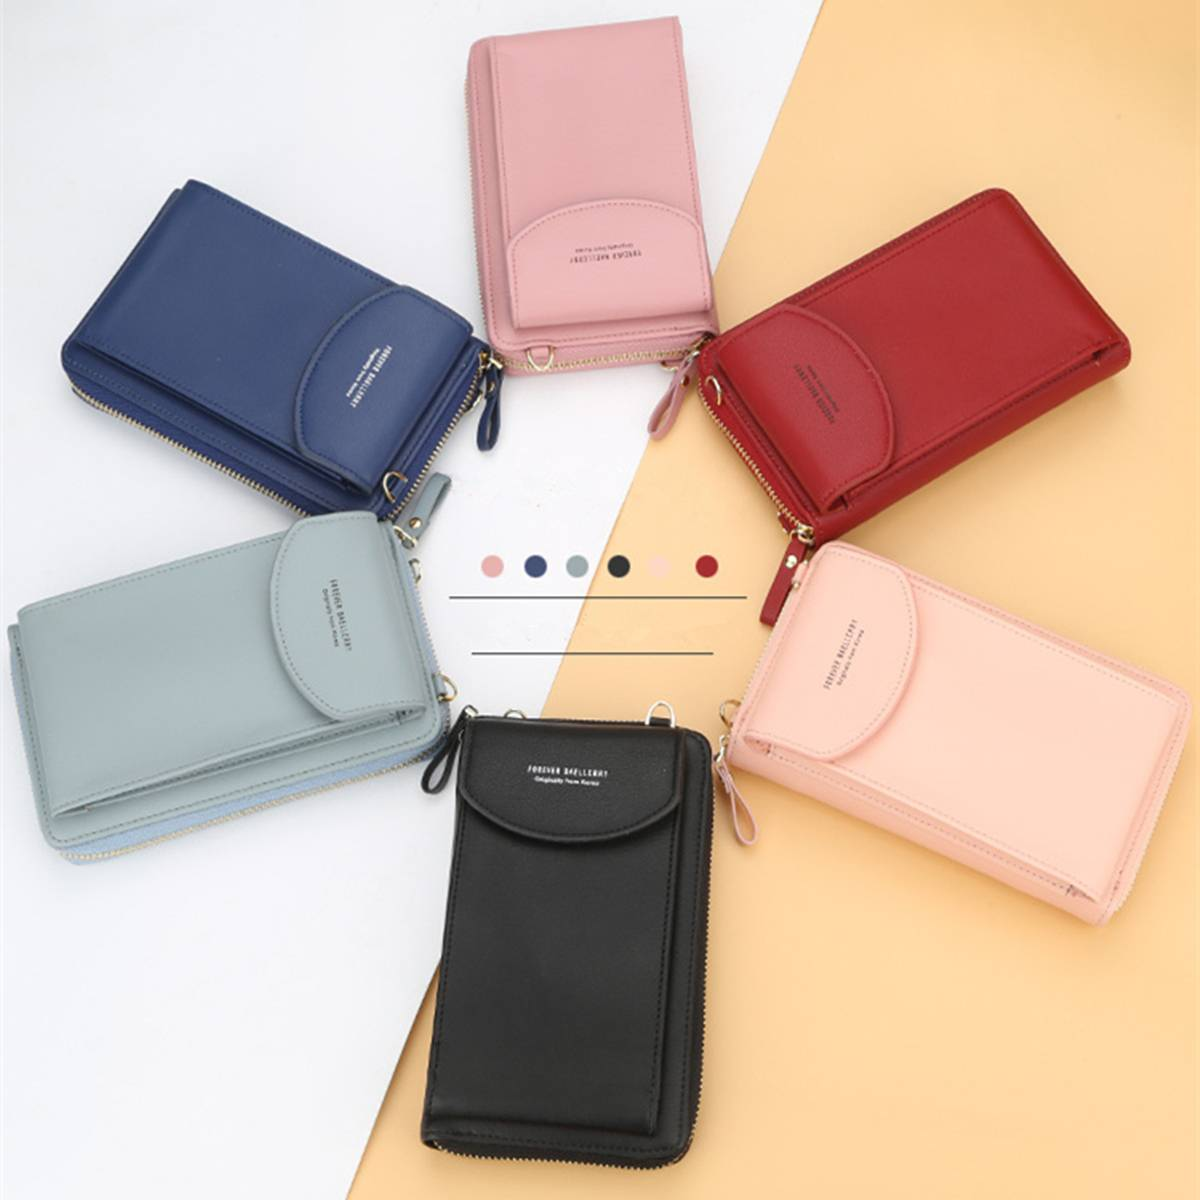 AEQUEEN 2019 Fashion Women Small Handbag Female Long Purse Coin Cell Phone Mobile Phone Crossbody Shoulder Bag In Macaron Colors